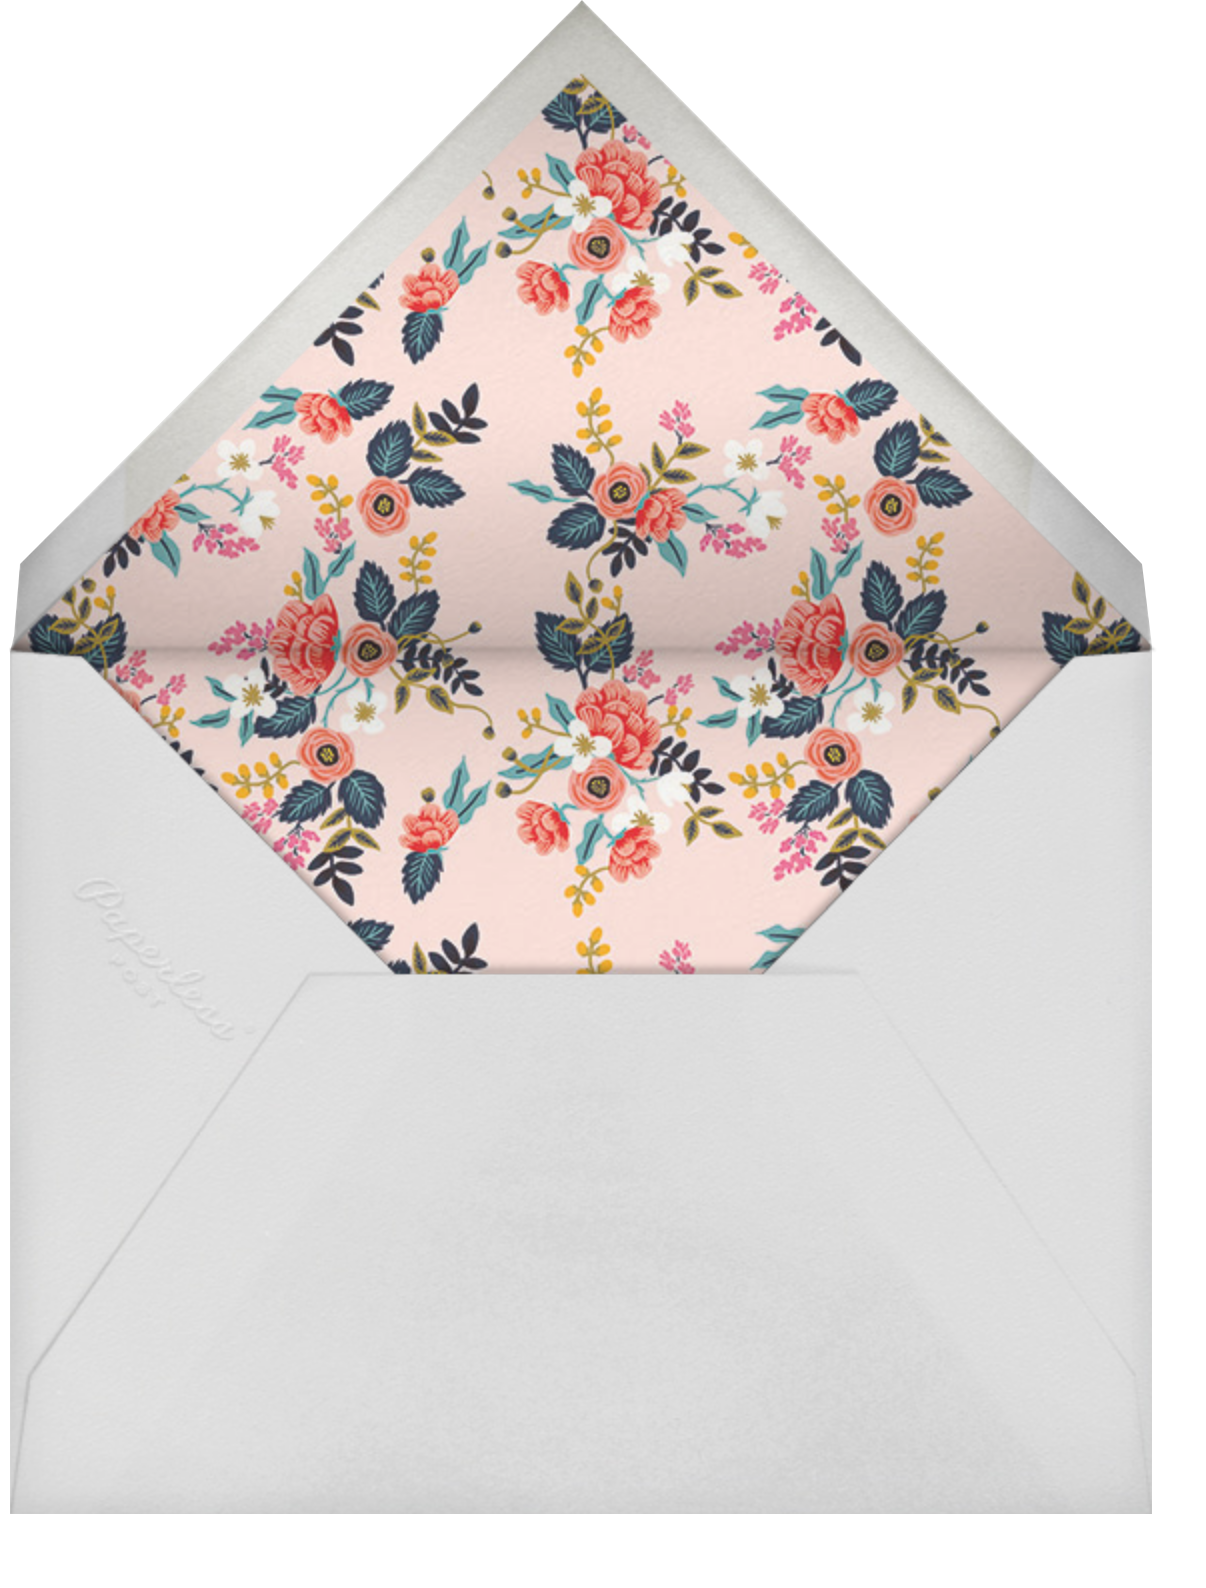 Birch Monarch Suite (Invitation) - Spruce - Rifle Paper Co. - All - envelope back